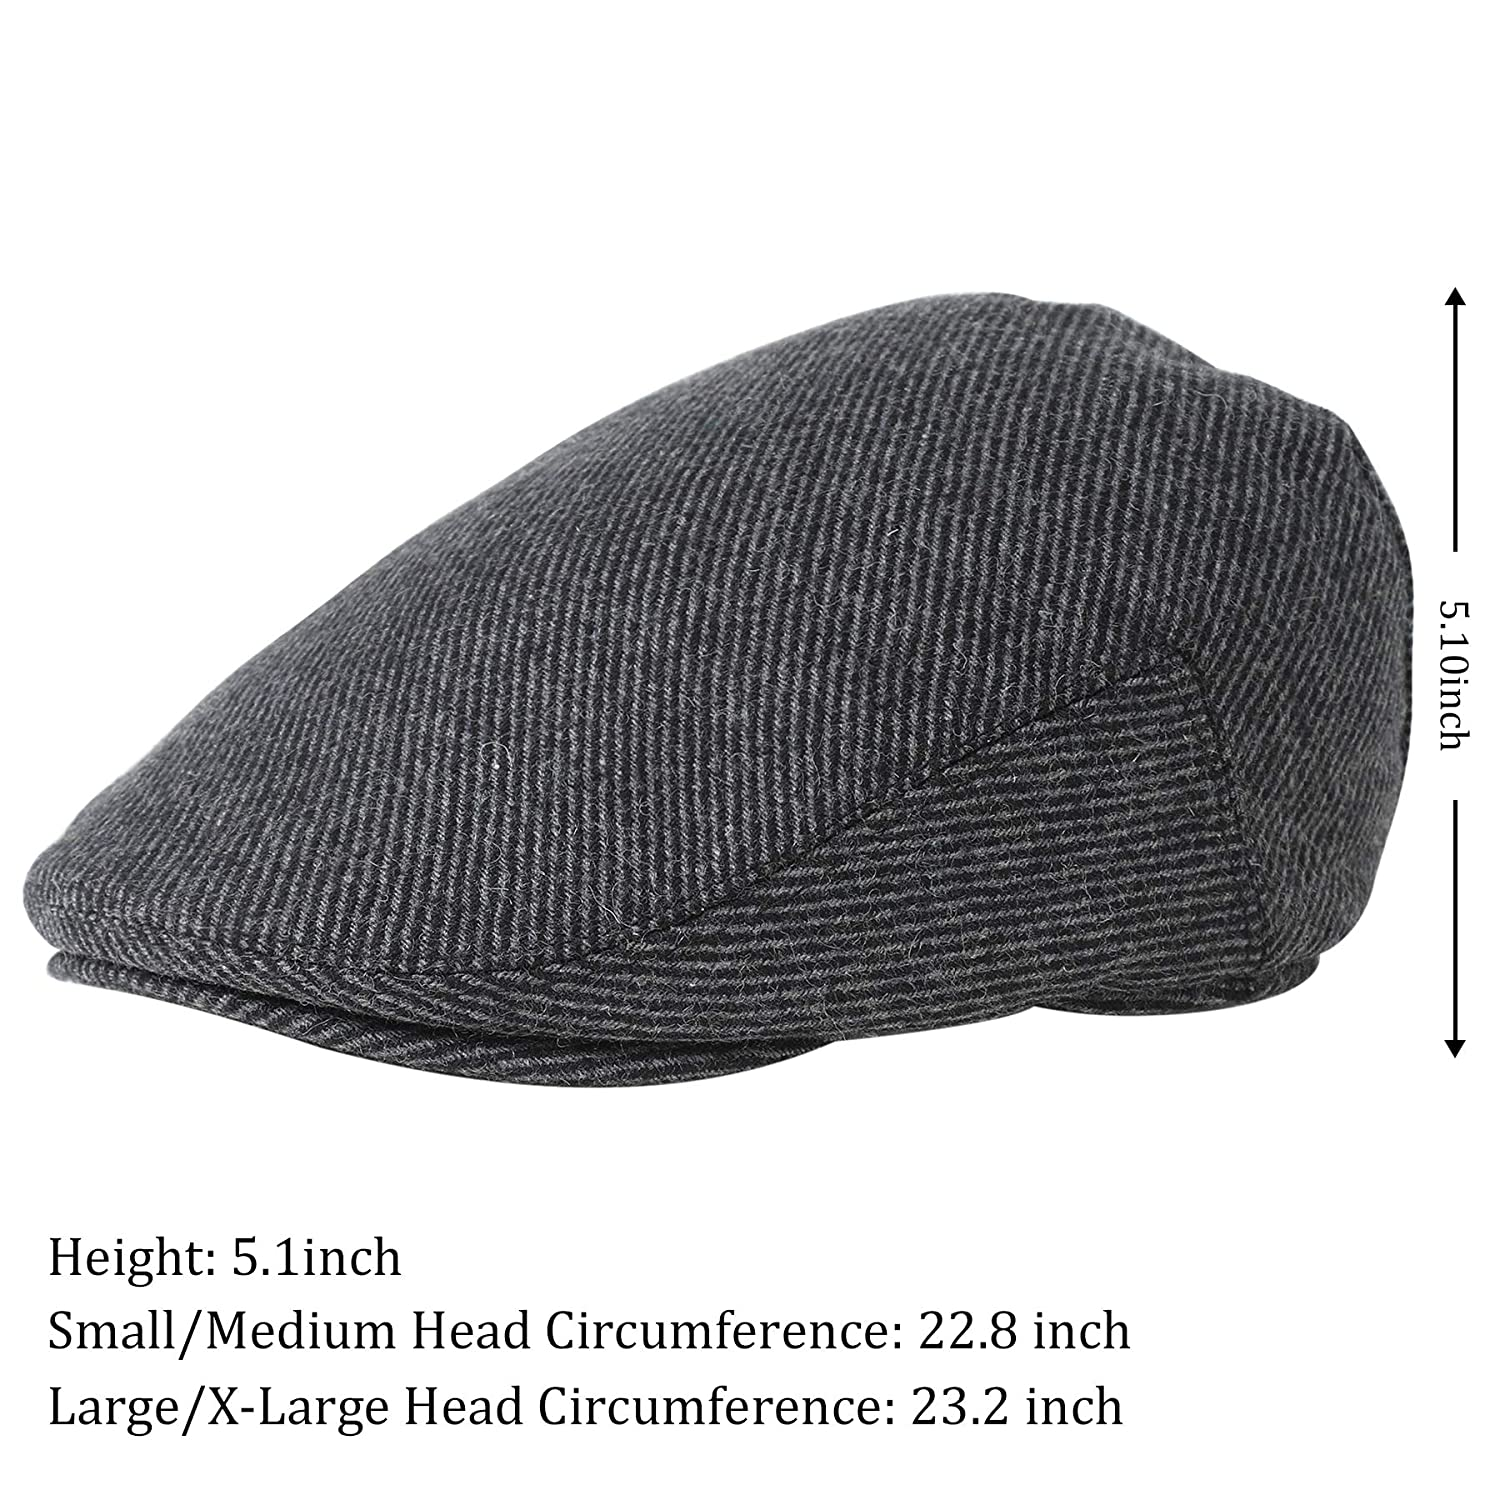 36fca39a84f1a BABEYOND 1920s Gatsby Newsboy Hat Cap for Men Gatsby Hat for Men 1920s Mens  Gatsby Costume Accessories at Amazon Women s Clothing store